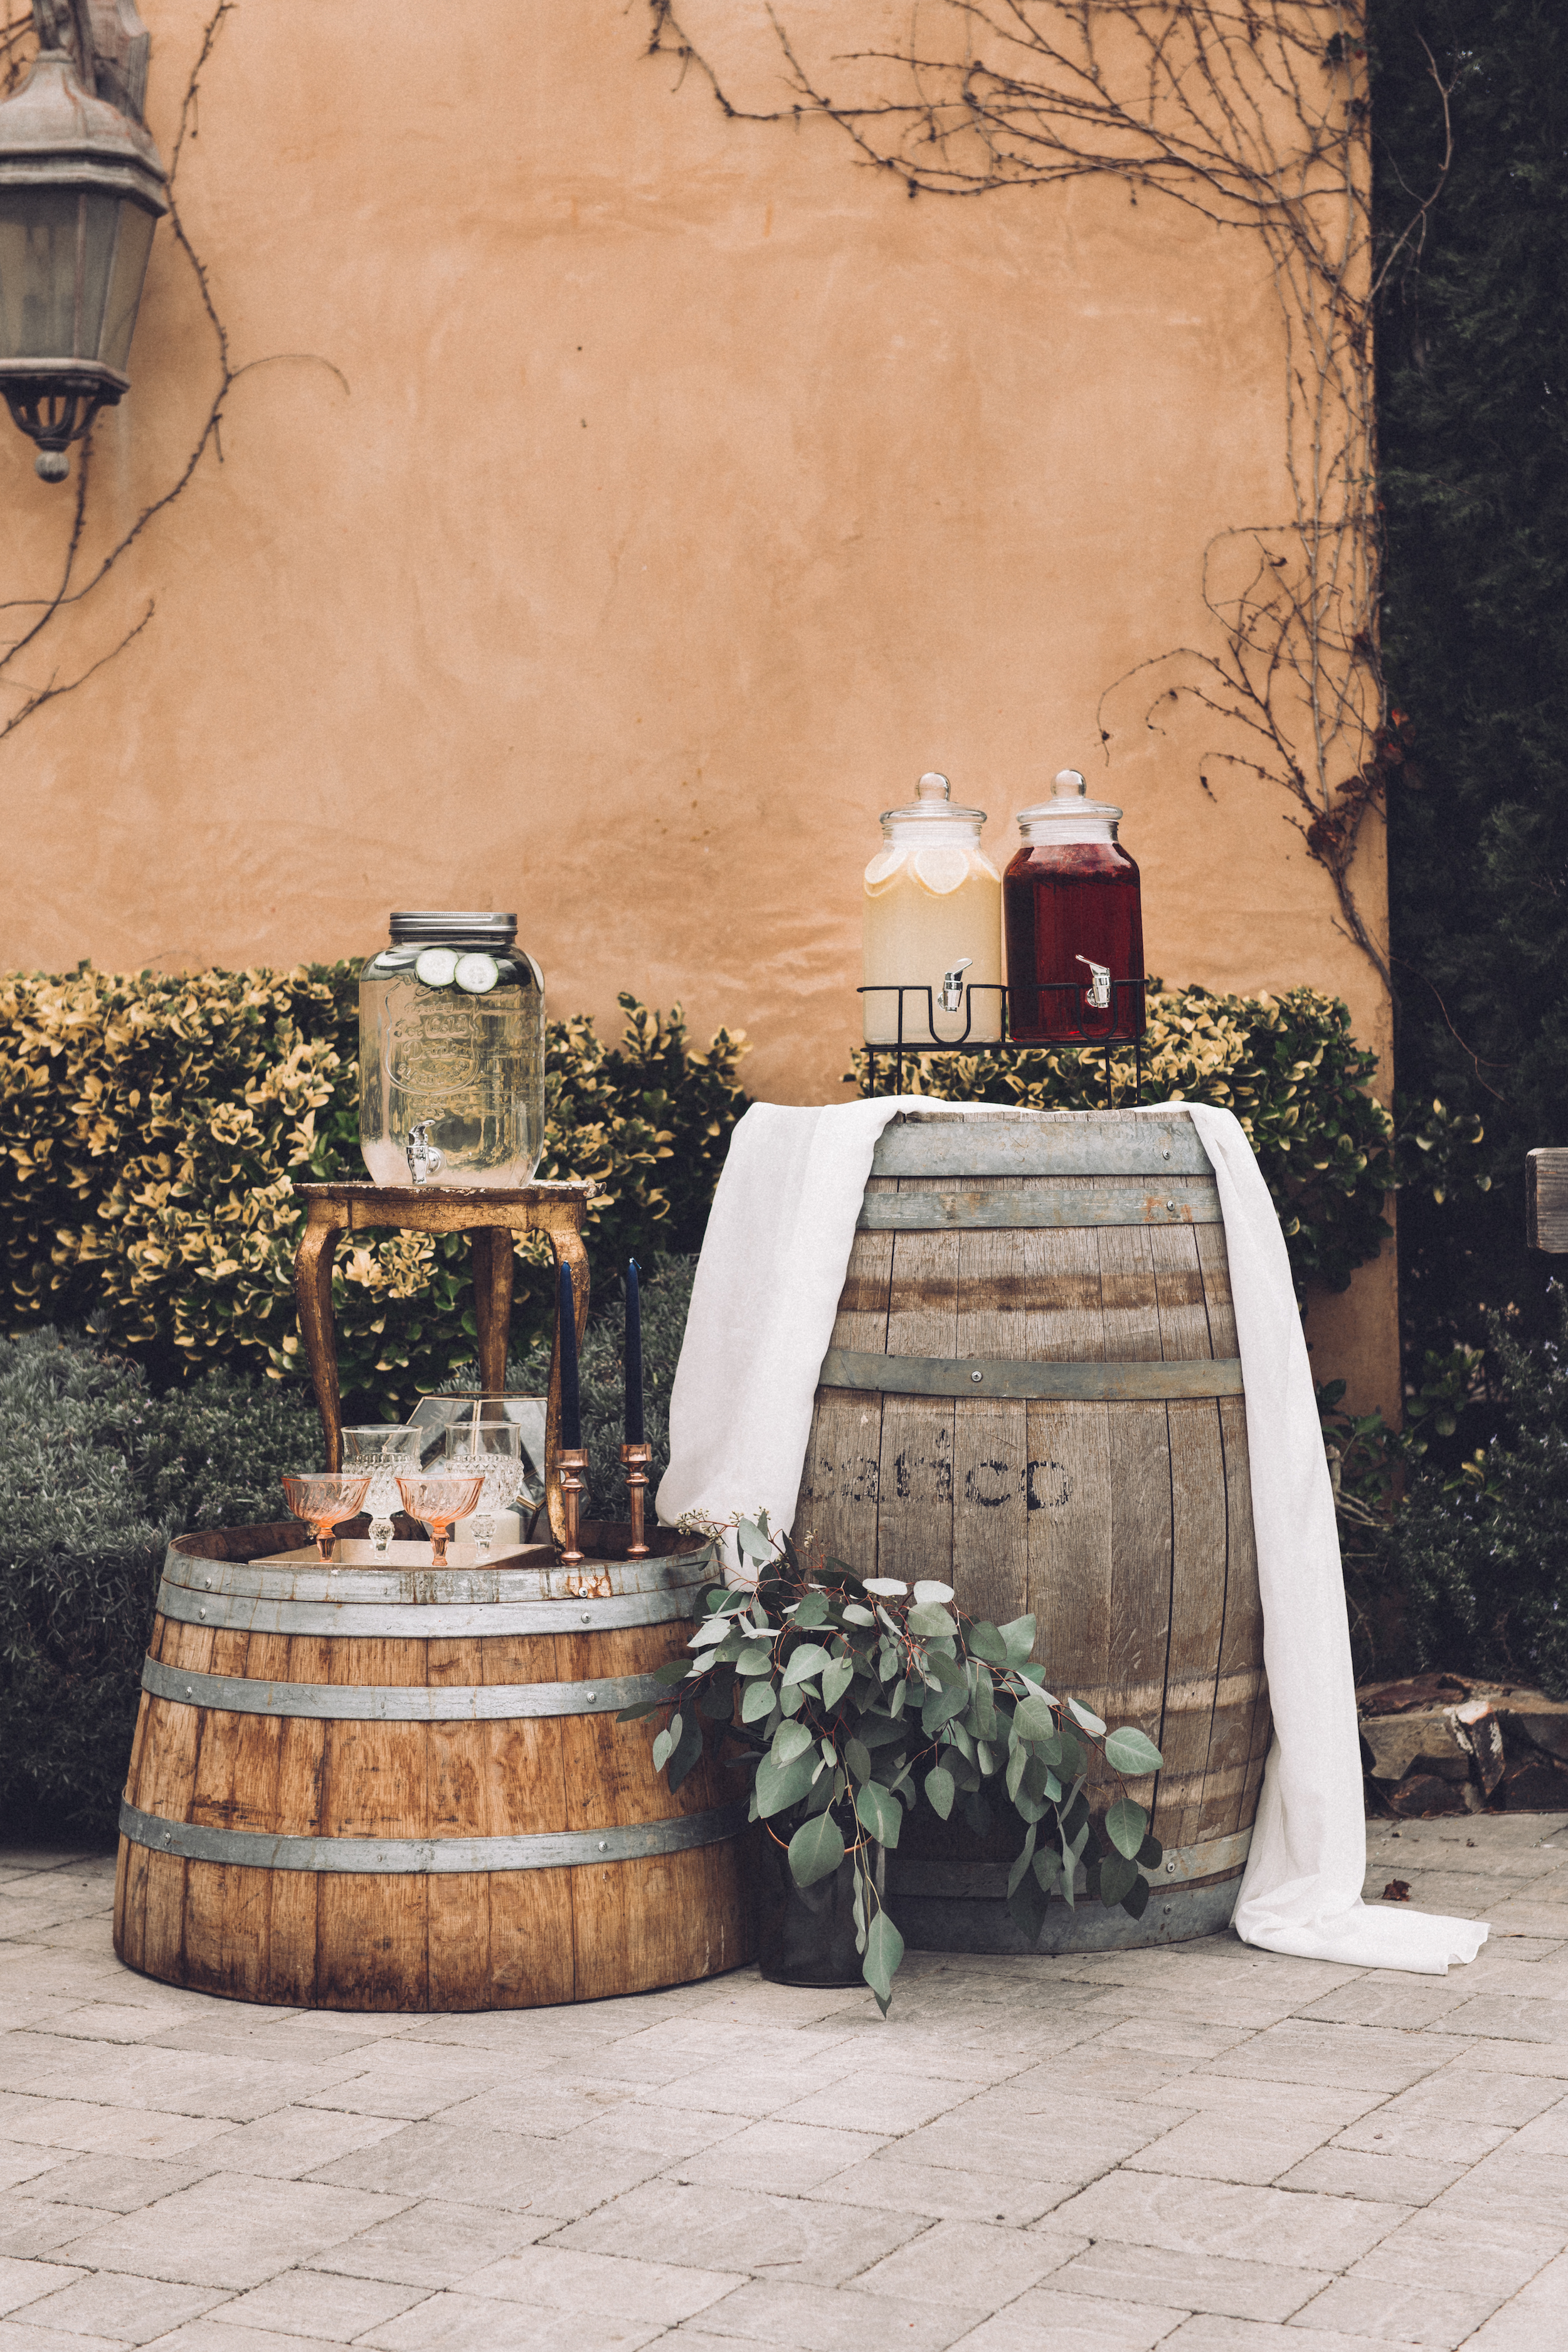 - Drink stations are a necessity when having cocktail hour. Just another service that Sage Bleu Catering offers!@sagebleucatering